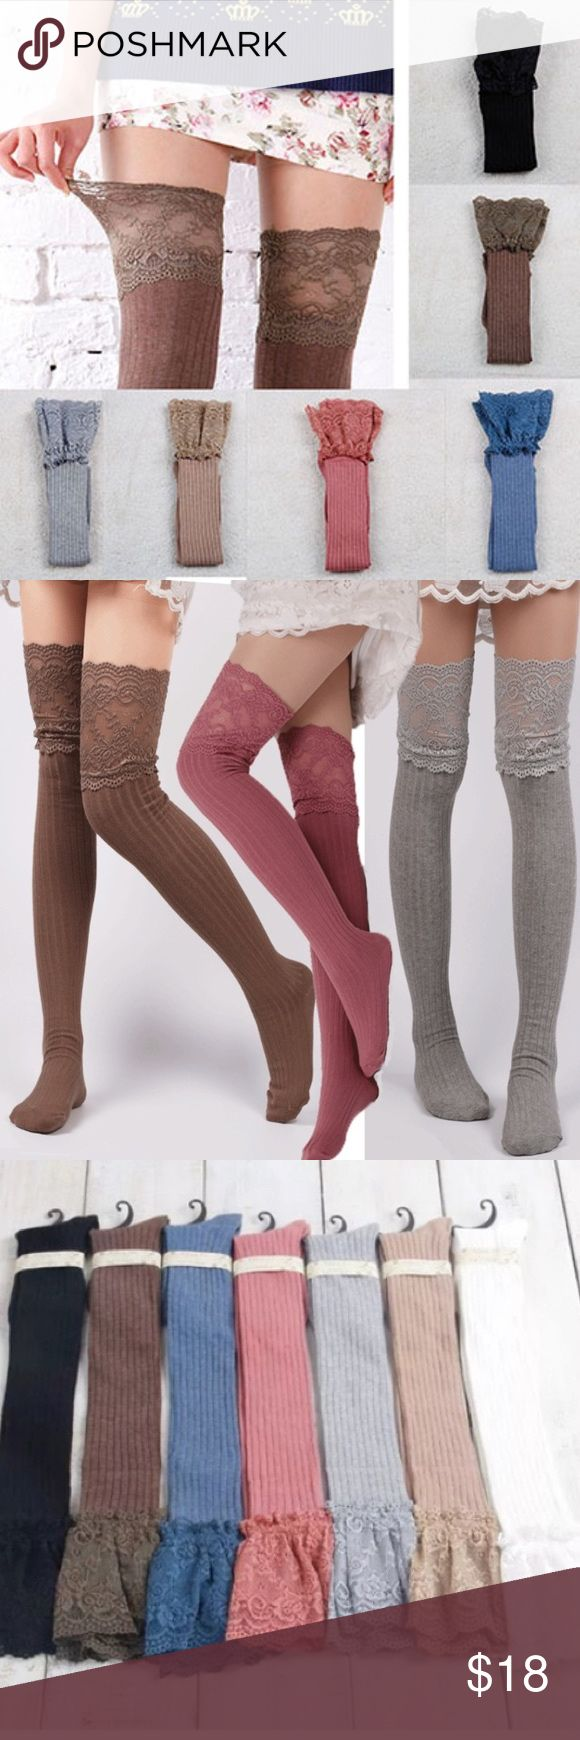 "Thigh High Ribbed Lace Top Stocking Socks Brand new plush lace top high socks. Wear with your favorite mini dress to warm your legs and add style to your outfit. 22"" unstretched, 25"" worn. Ship same day if ordered by 10:00 CST. Bundle 3 items and save 15% Accessories Hosiery & Socks"